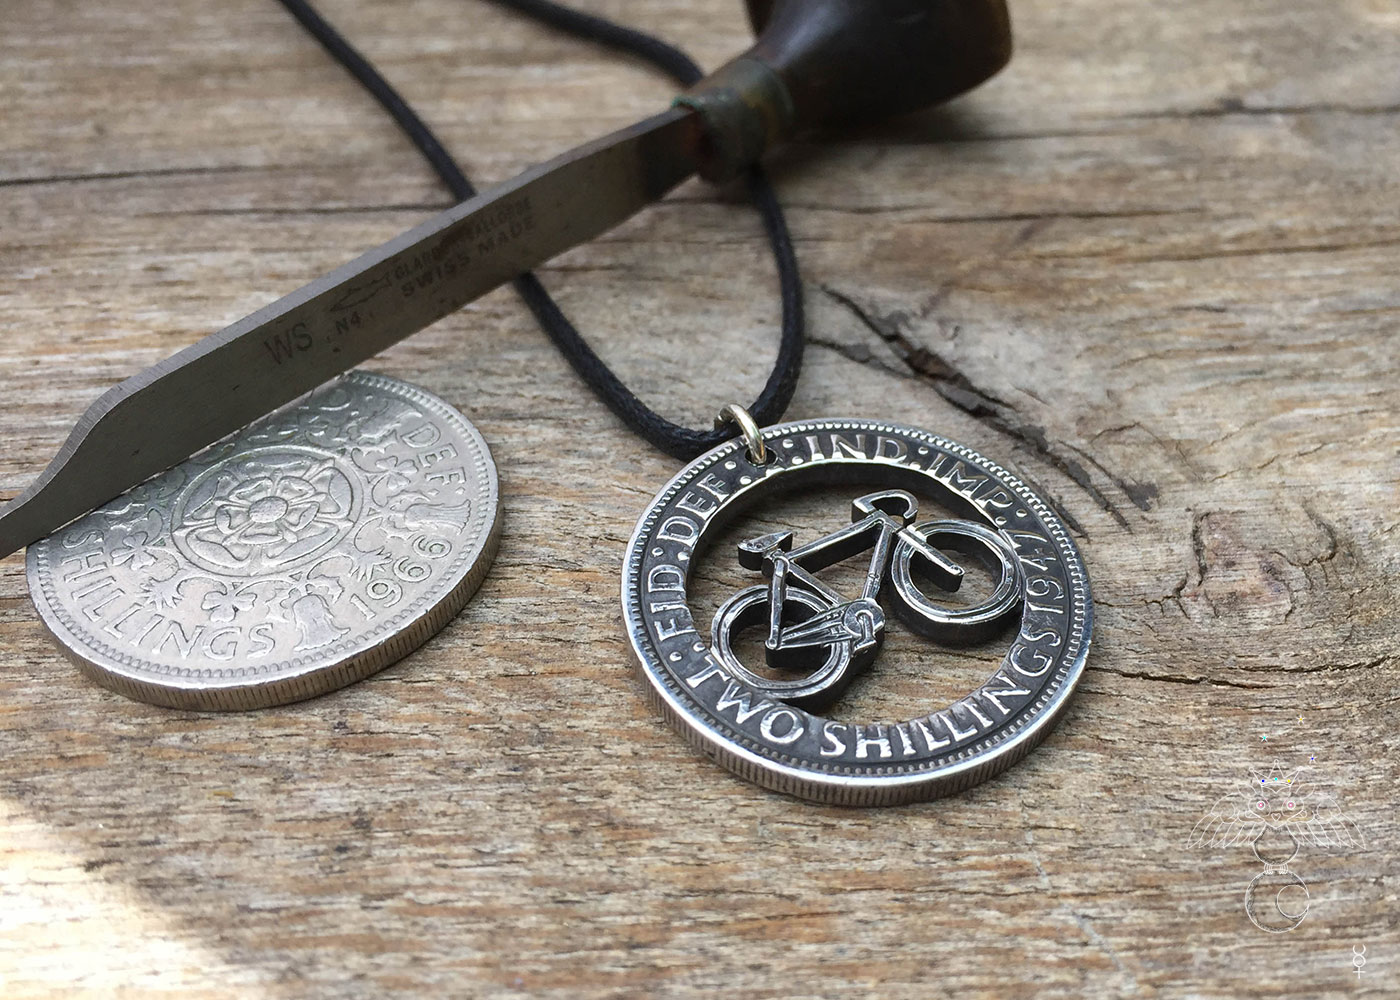 two shilling ten pence coin bicycle fixedgear cycle pendant necklace handmade and recycled in Cambridge.